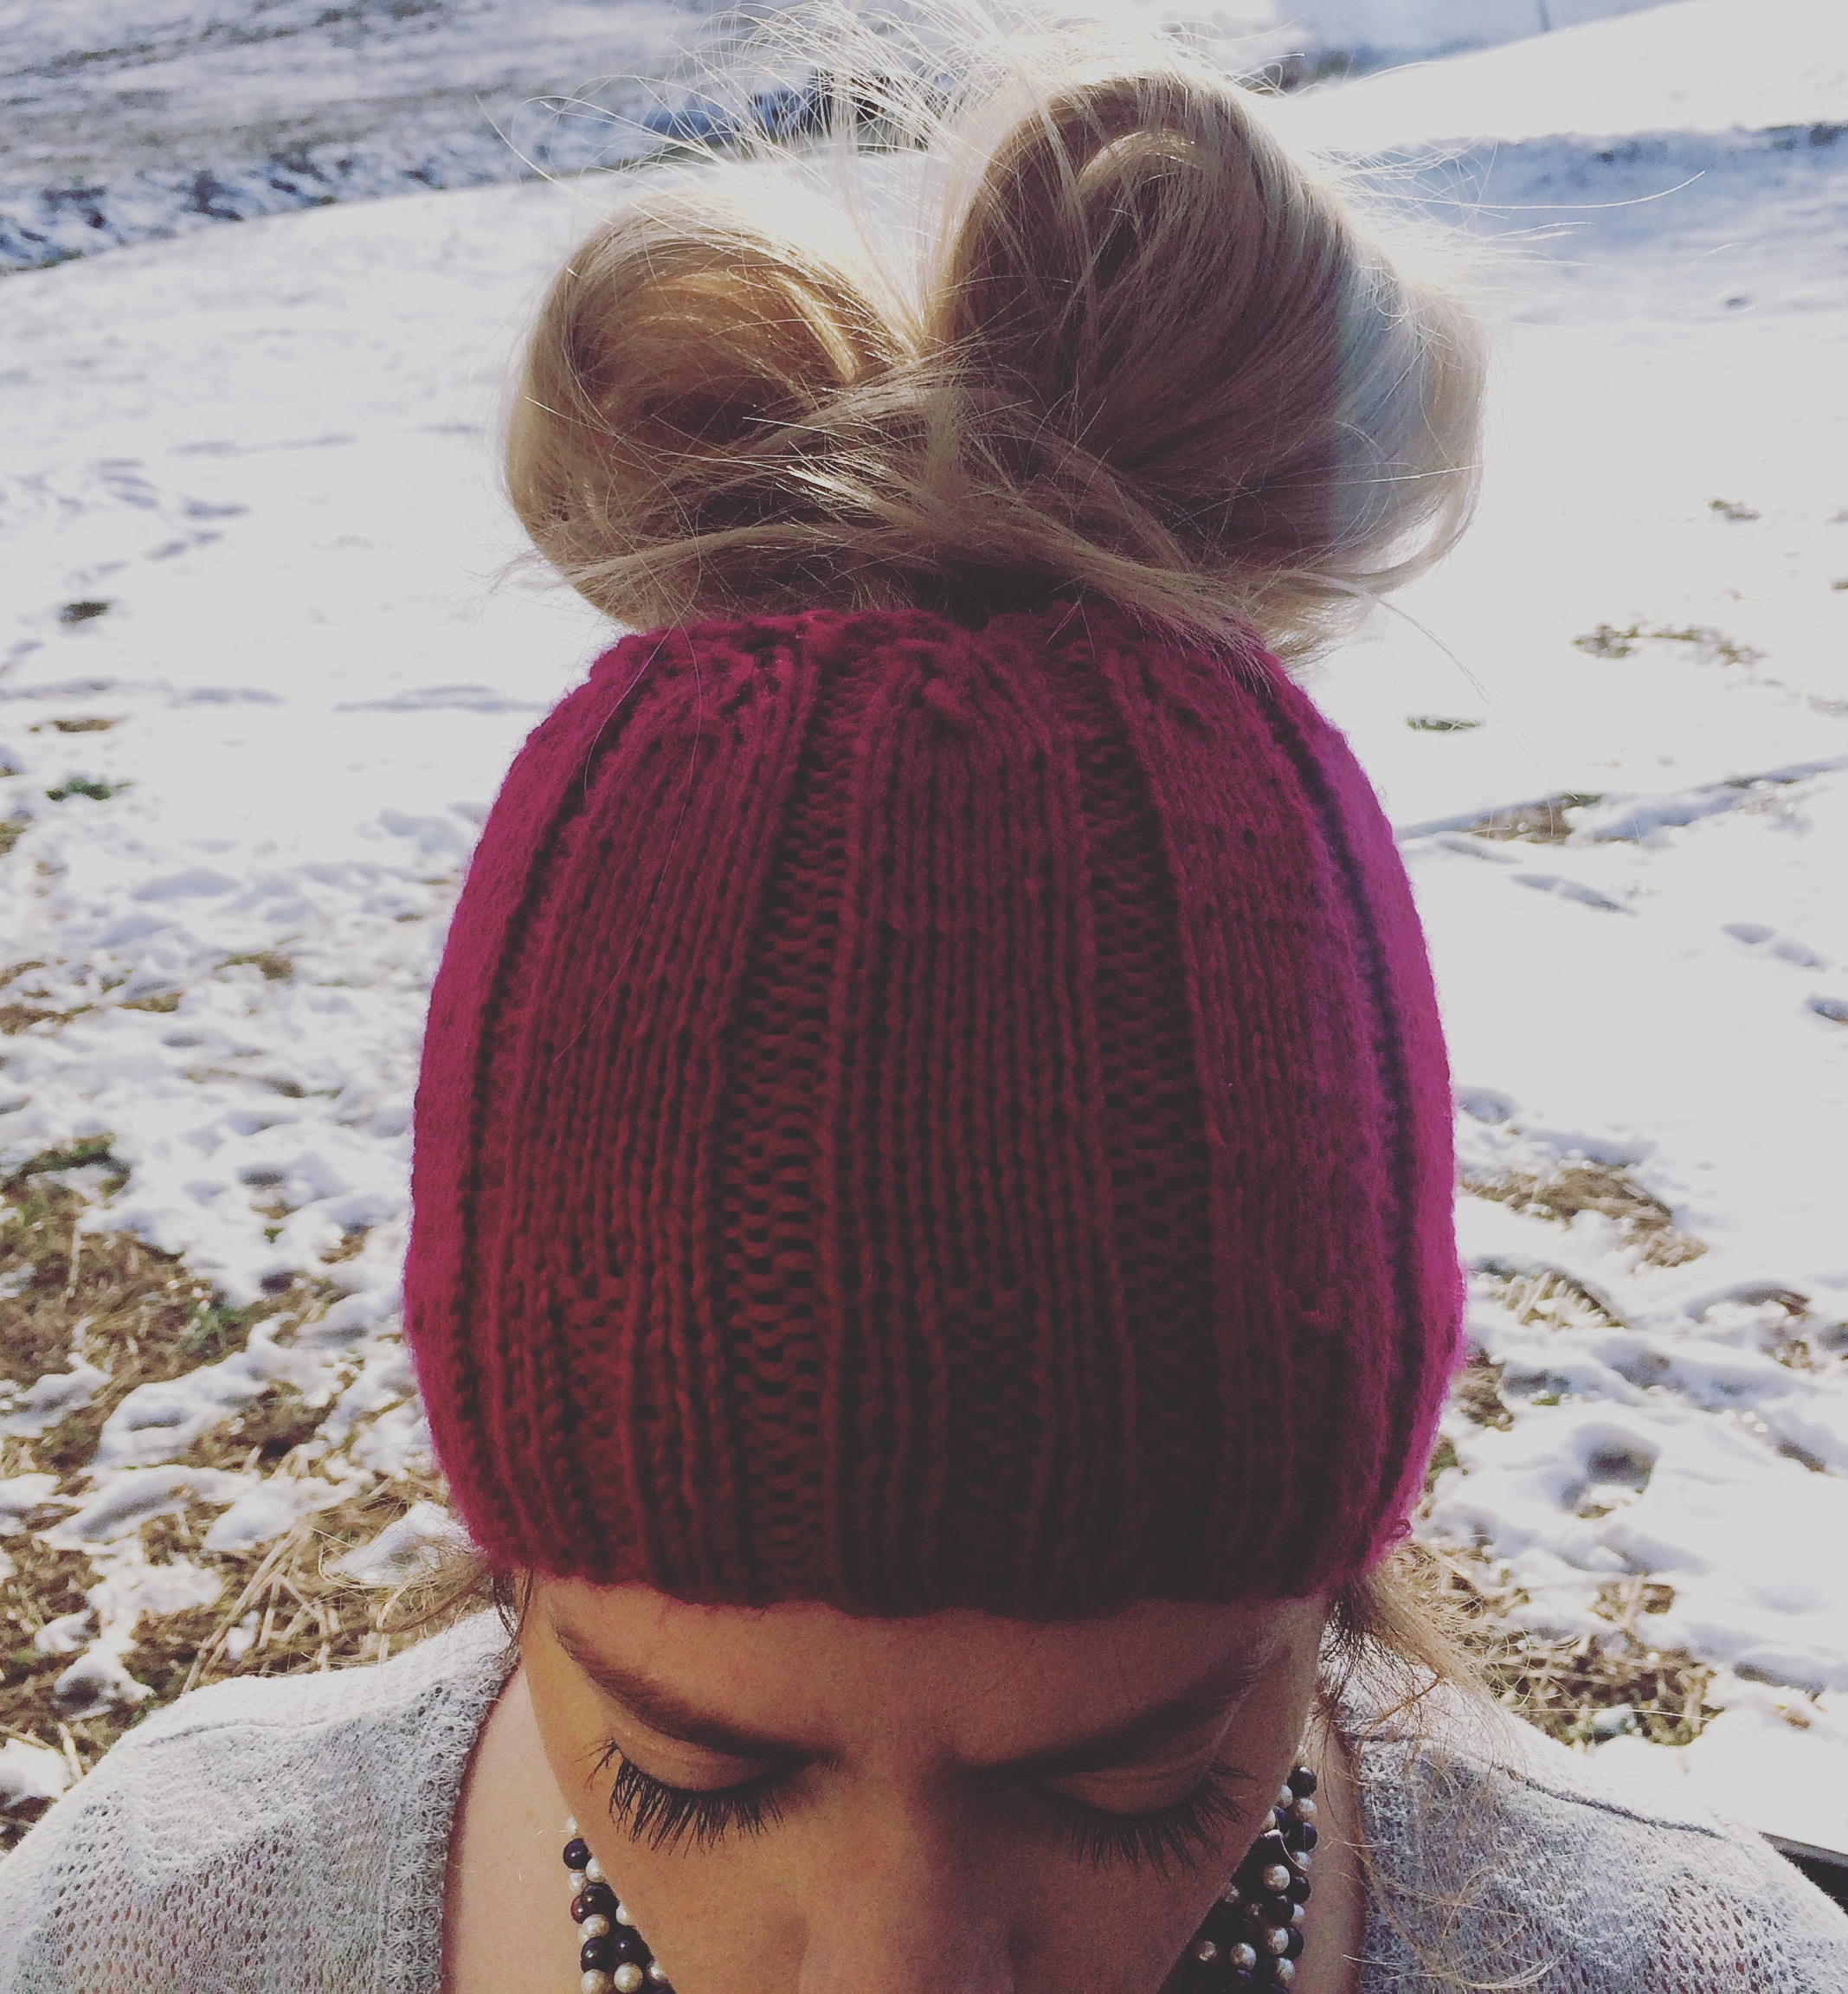 ponytail winter hat